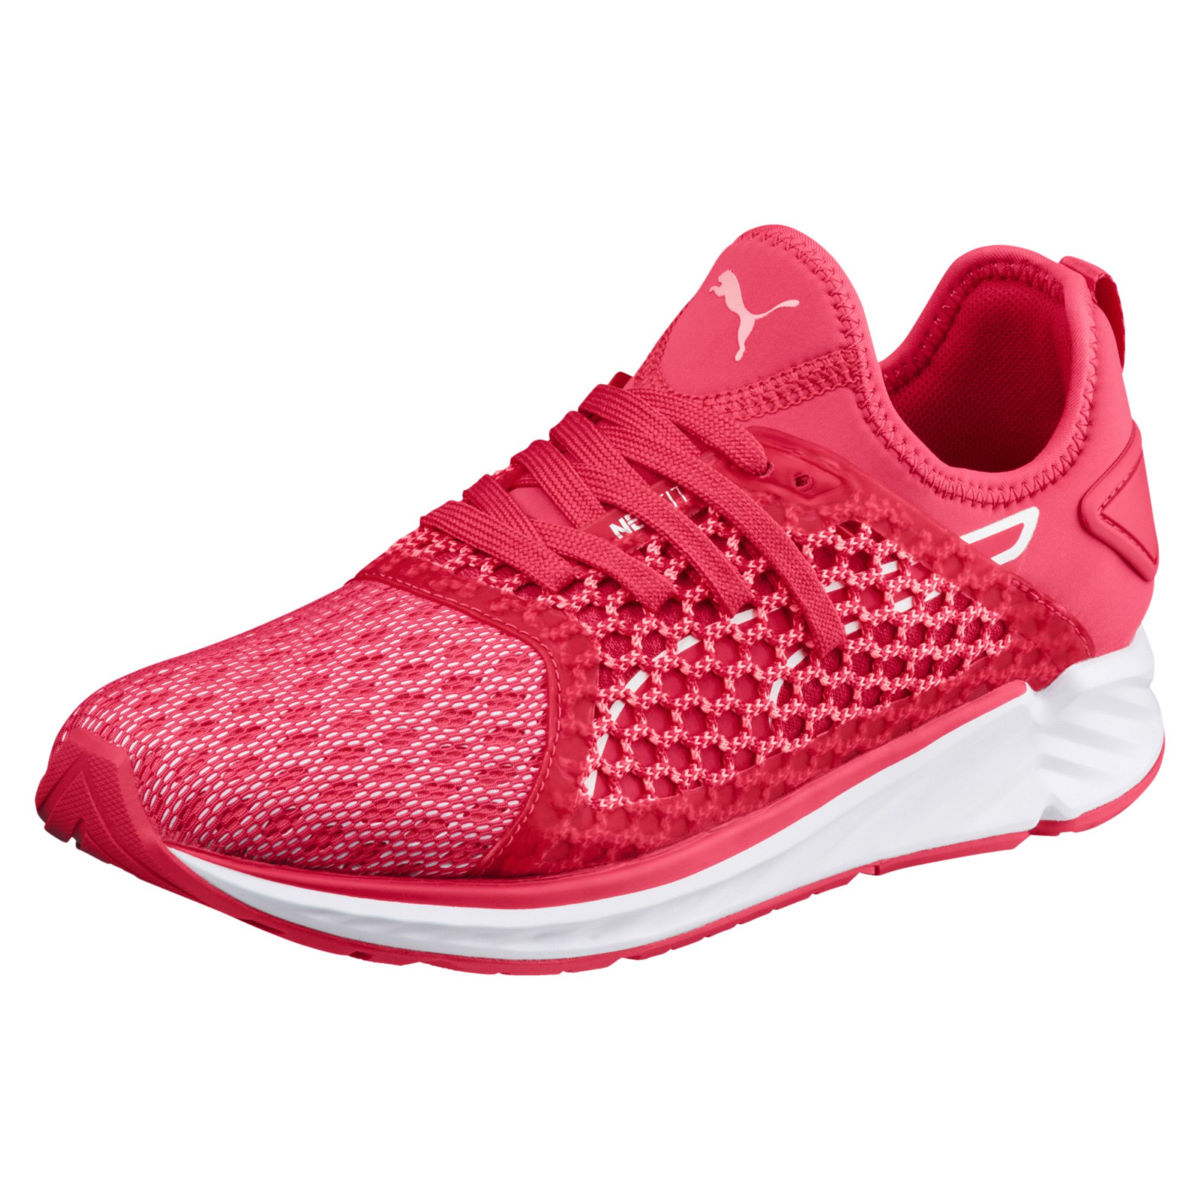 Chaussures Femme Puma Ignite 4 Netfit - UK 4.5 pink-fluopeach